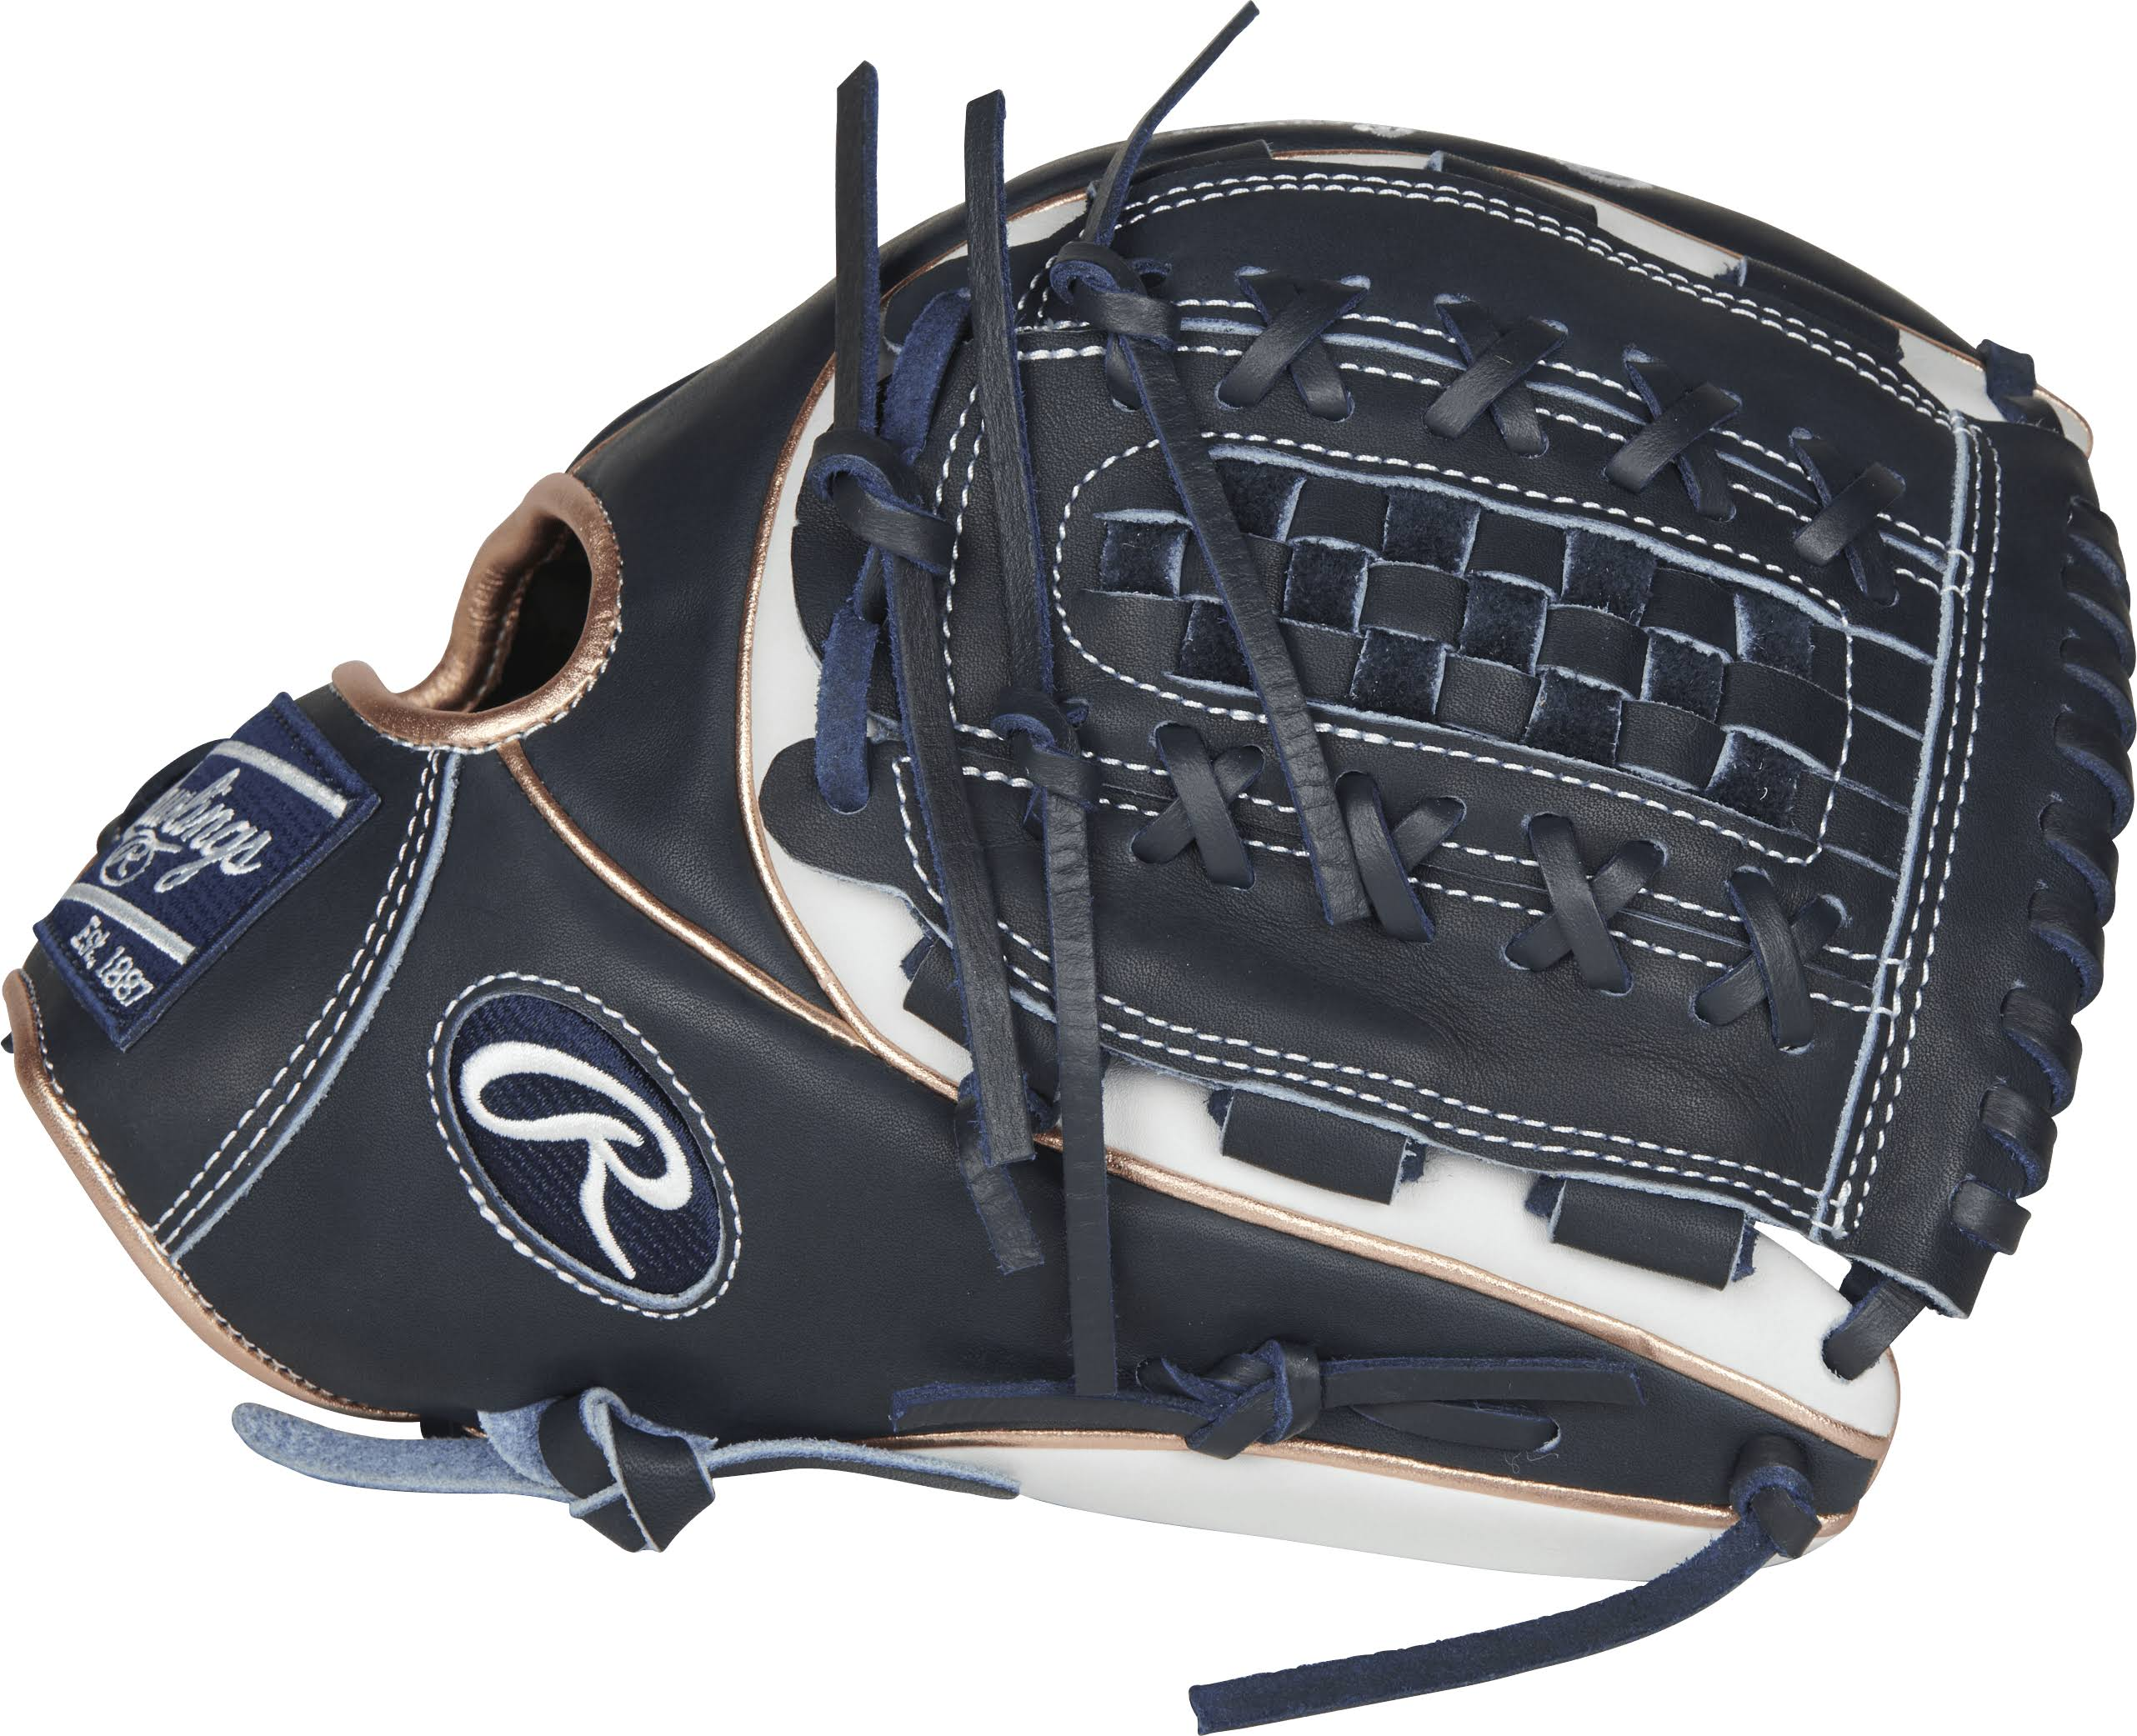 Rawlings Heart of the Hide Softball Gloves - Right-Handed Thrower, Black